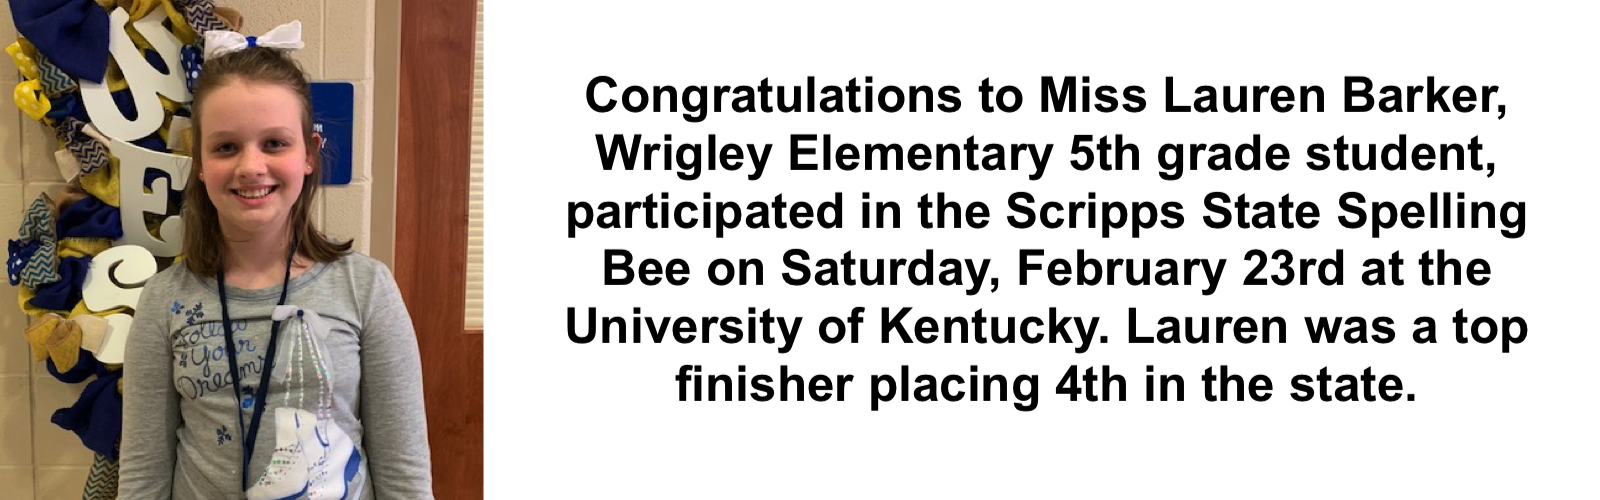 Congratulations to Miss Lauren Barker, Wrigley Elementary 5th grade student, participated in the Scripps State Spelling Bee on Saturday, February 23rd at the University of Kentucky. Lauren was a top finisher placing 4th in the state.